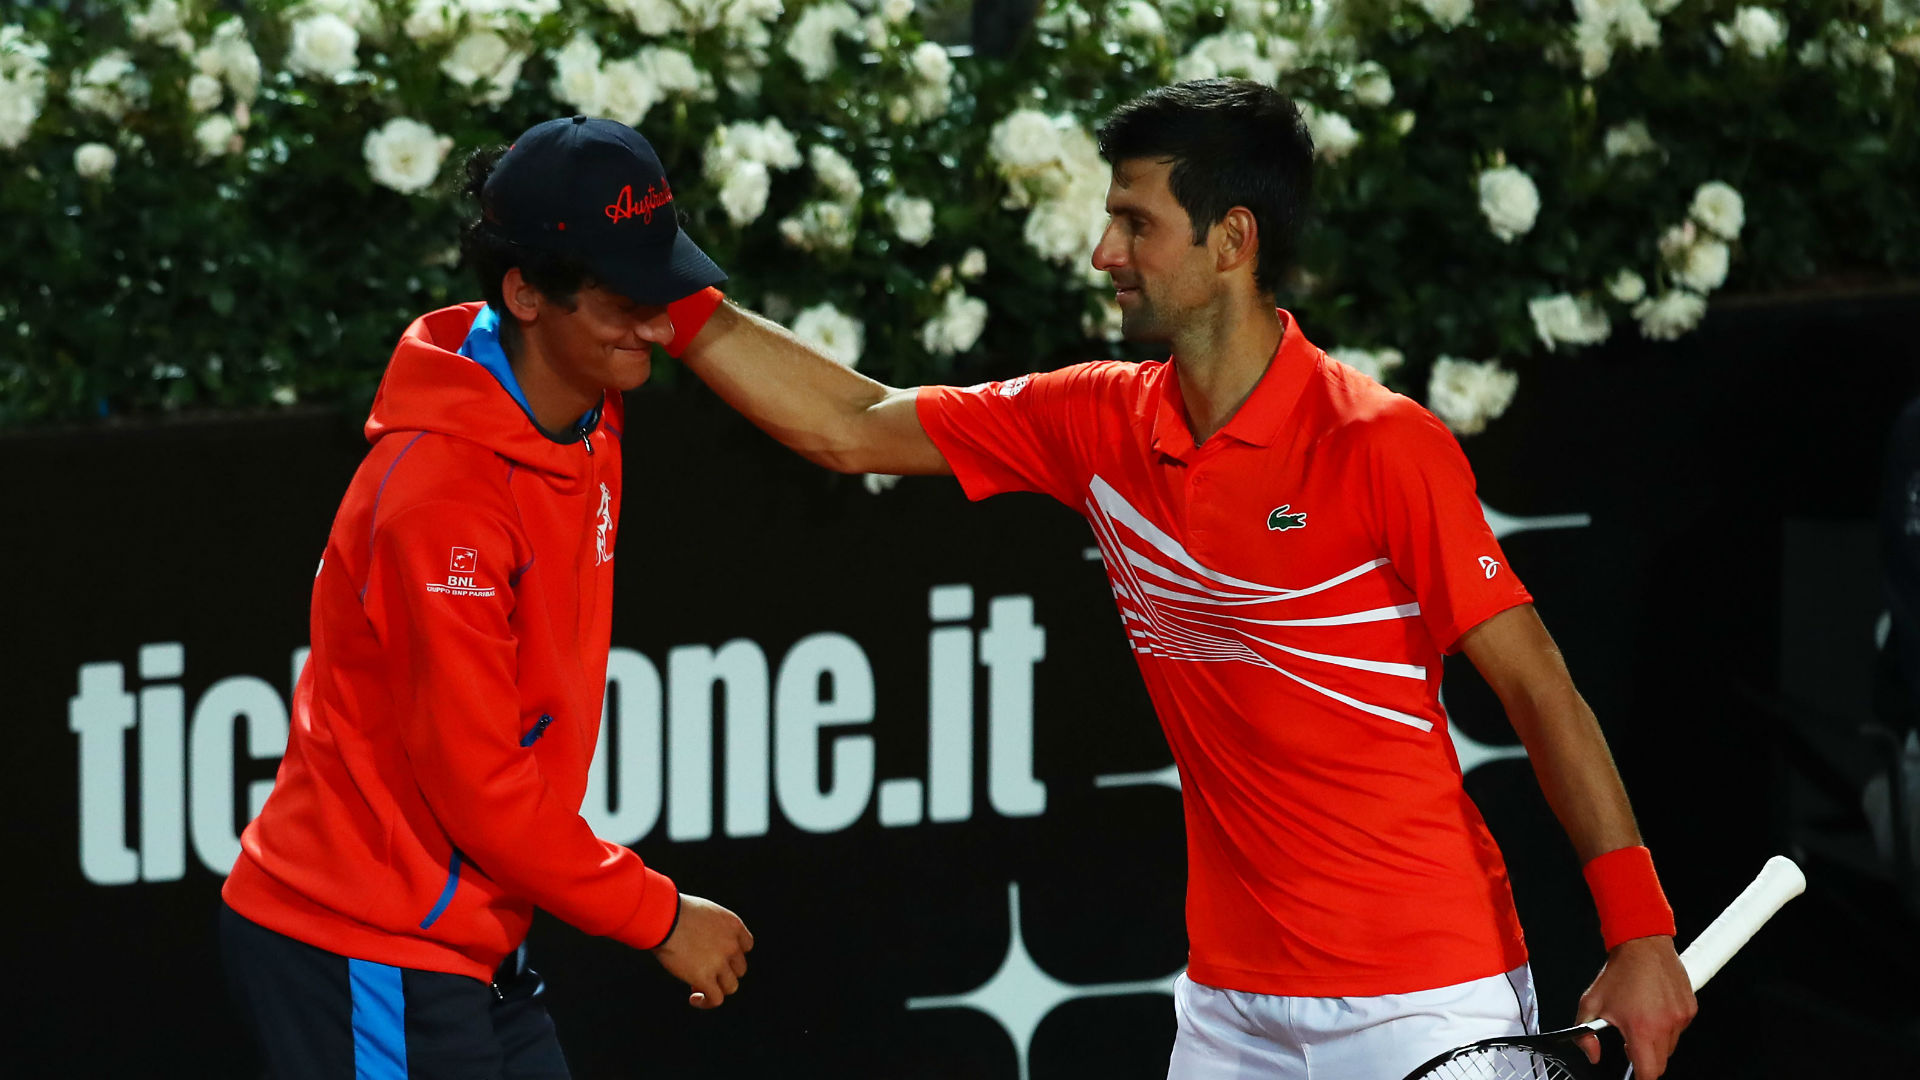 Ouch! Djokovic embarrassed after accidentally hitting ball boy